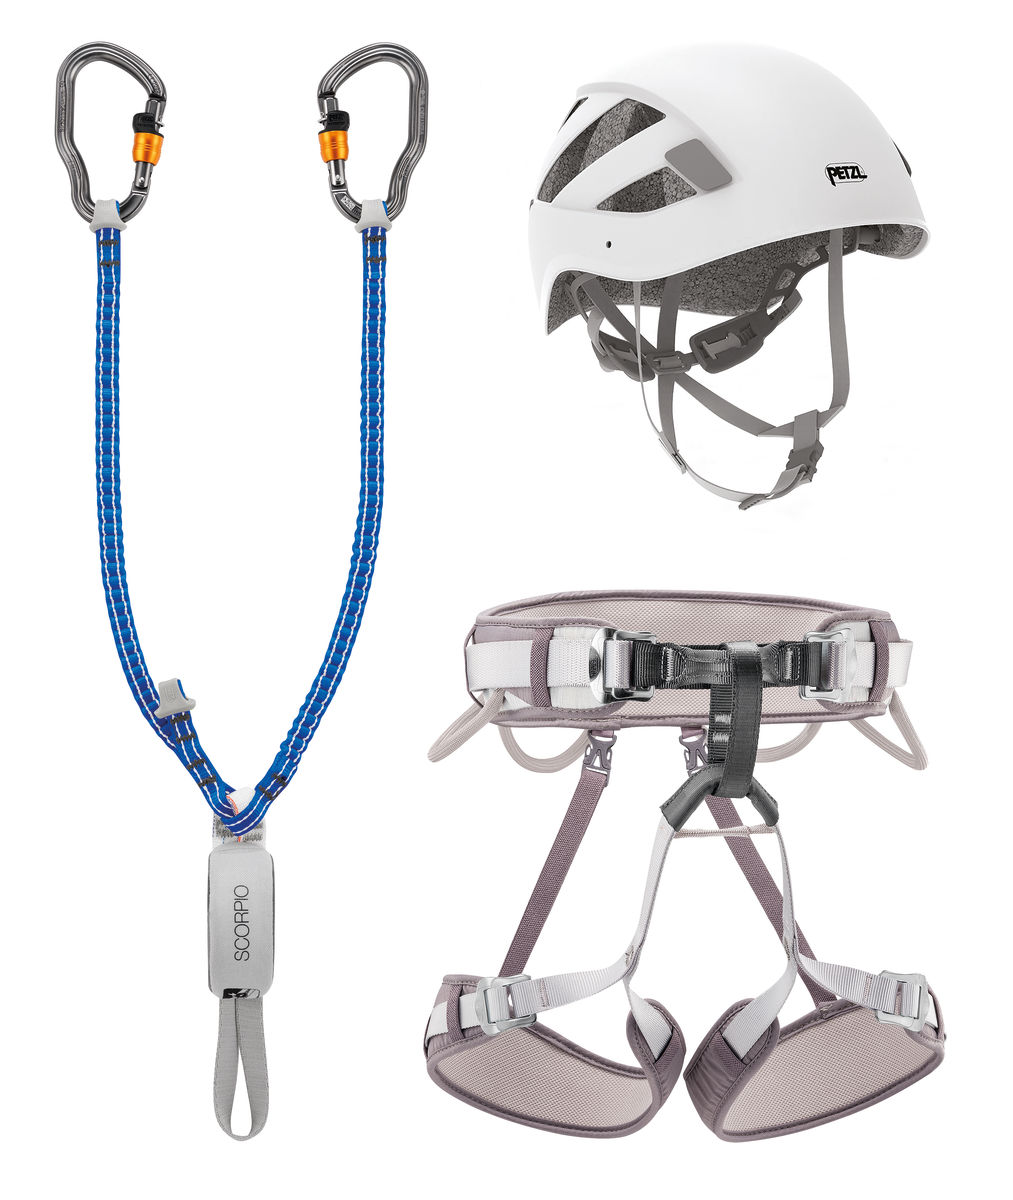 PETZL KIT VIA FERRATA VERTIGO CORAX-Tg.2